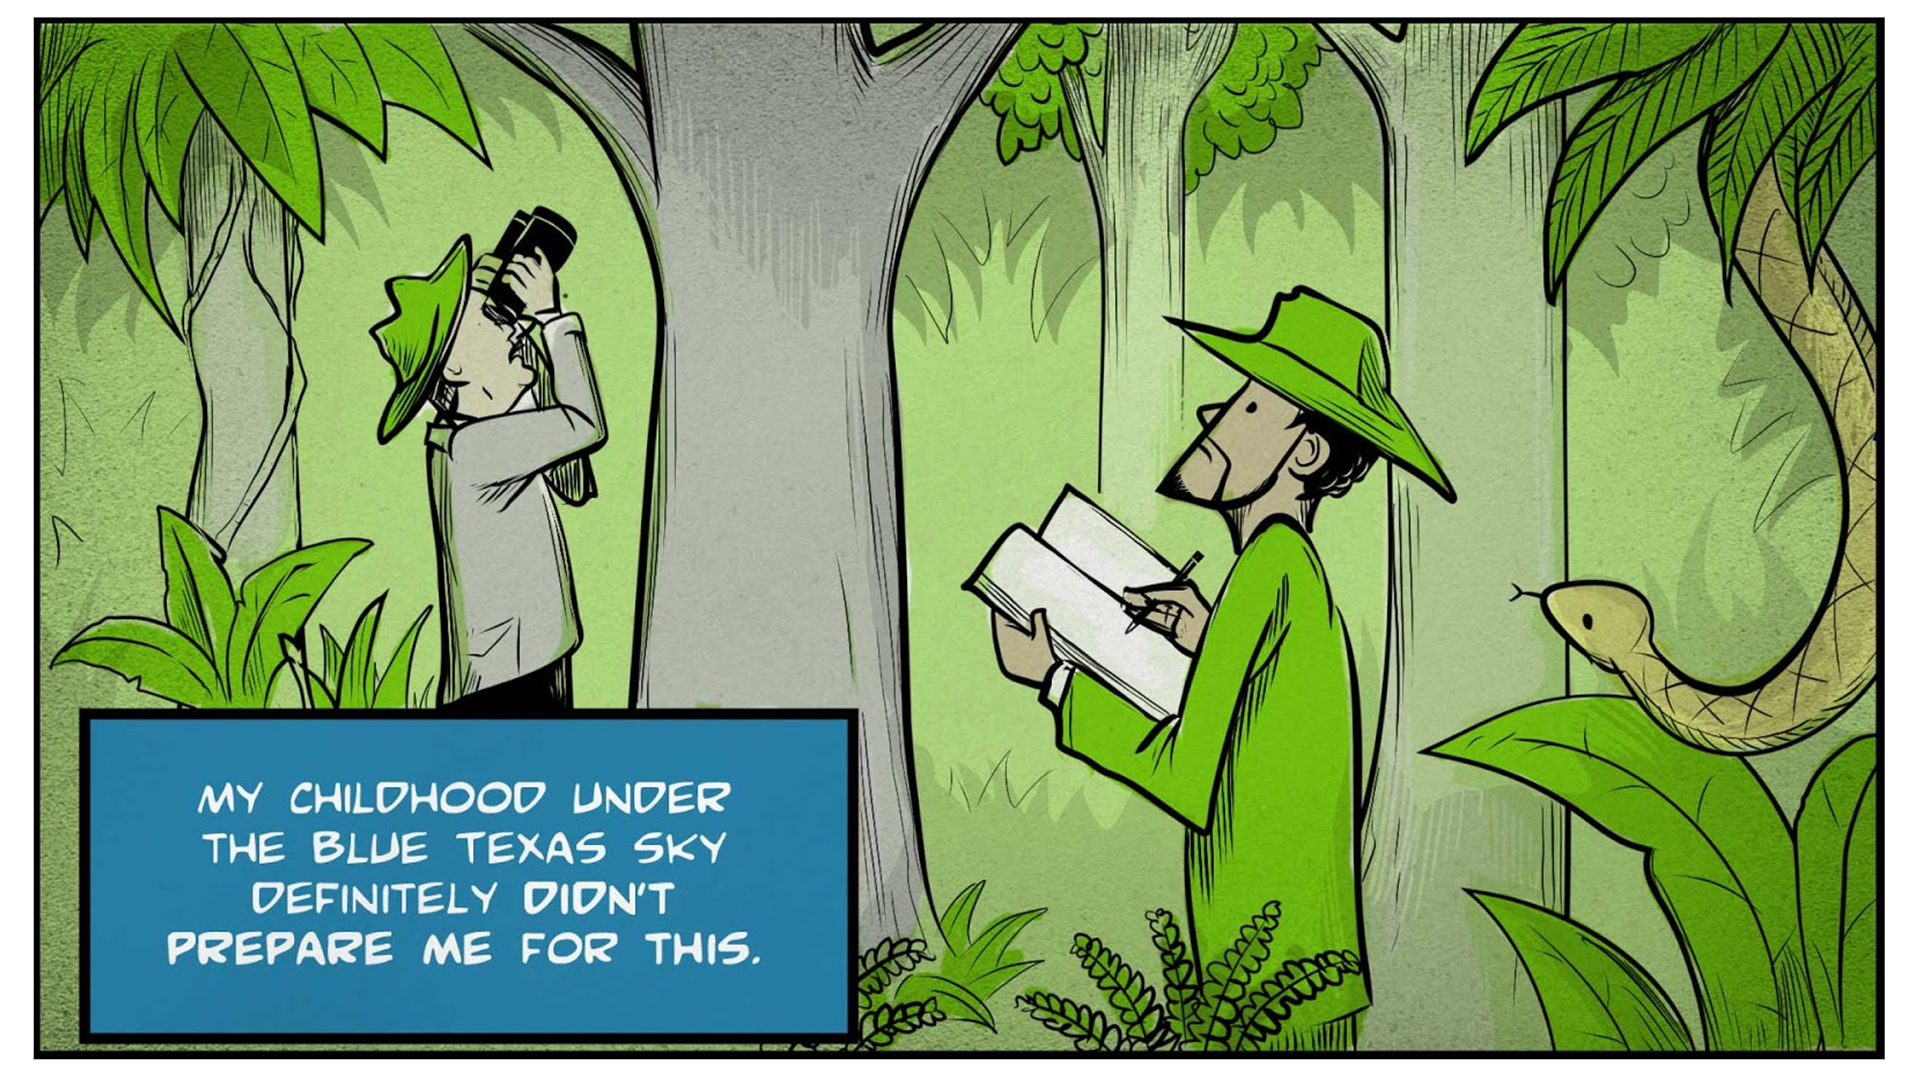 """Felix, the narrator, says, """"My childhood under the blue Texas sky definitely didn't prepare me for this."""" Two men stand in the middle of a jungle. One, the professor, is using binoculars to look up into a tree. The other, Felix, is taking notes in a field notebook. A large snake peers out of the foliage."""